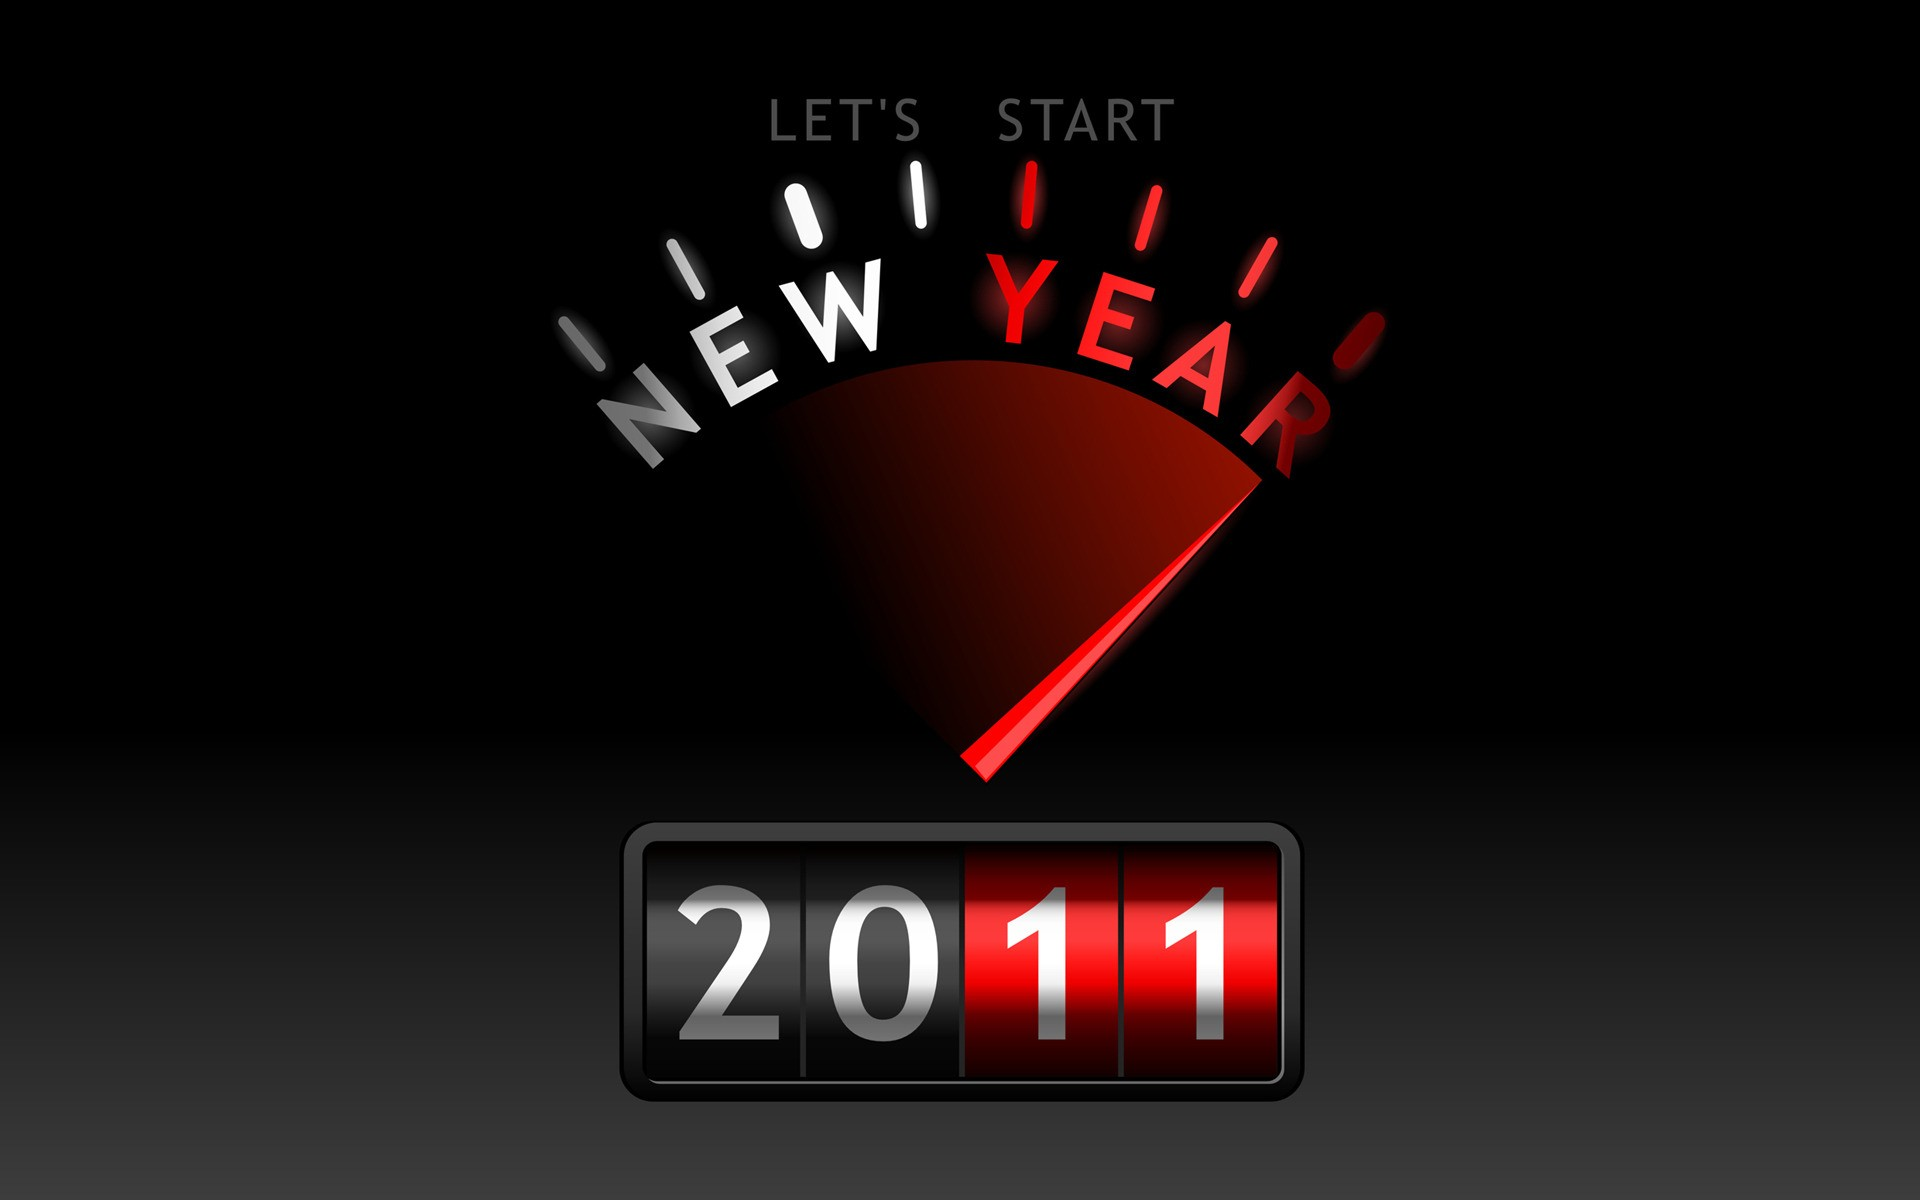 New Year Wallpapers 2011 - Happy New Year 2011 , HD Wallpaper & Backgrounds